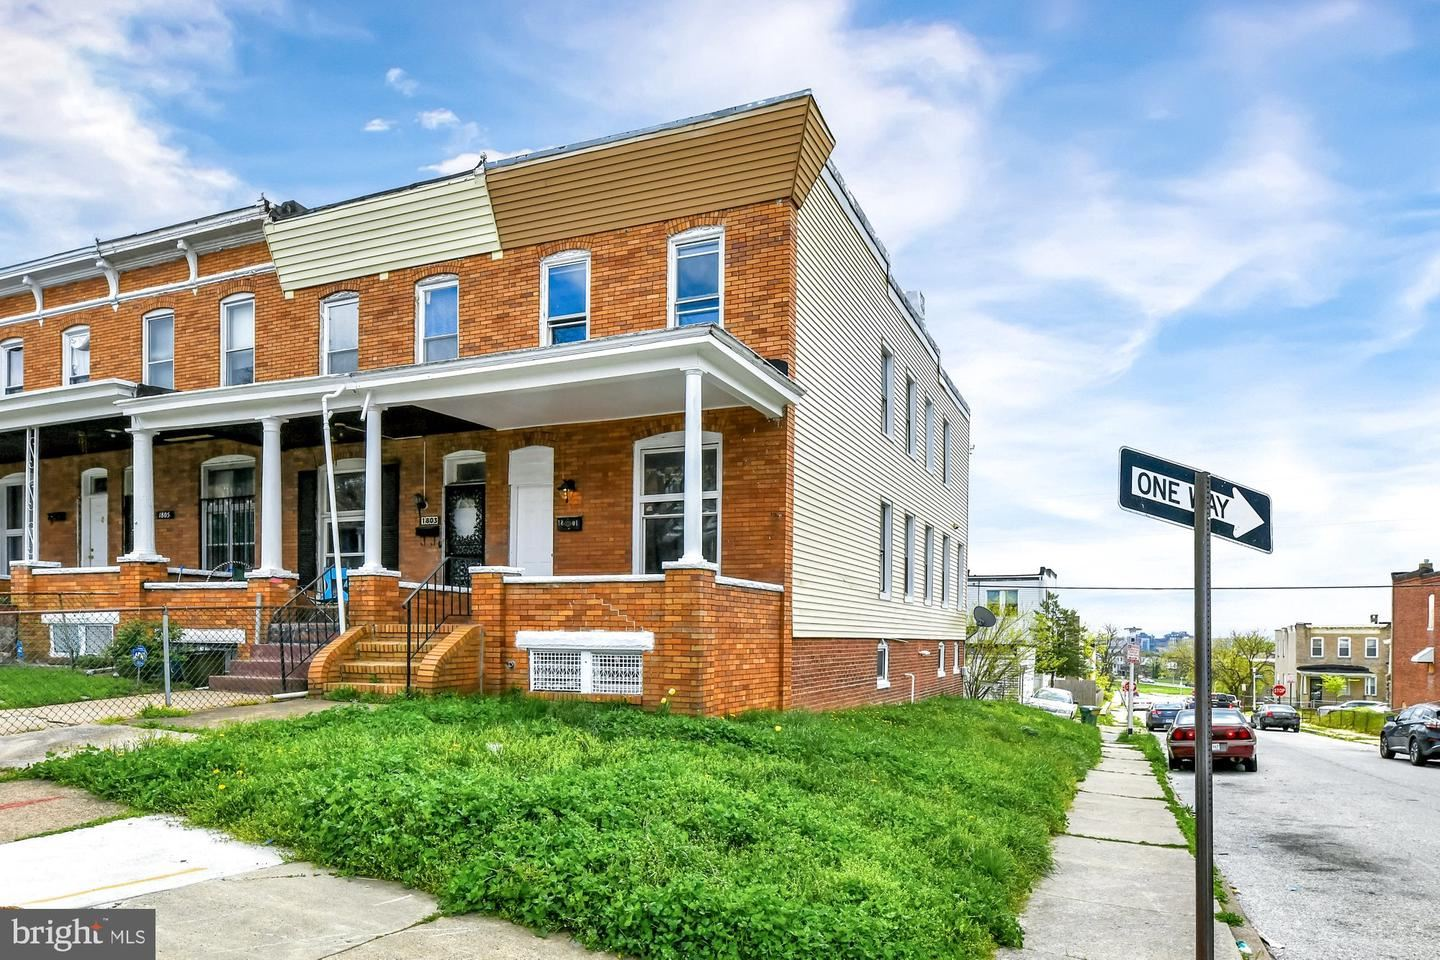 1801 E 30TH ST, Baltimore, MD 21218 - MLS#: MDBA547150